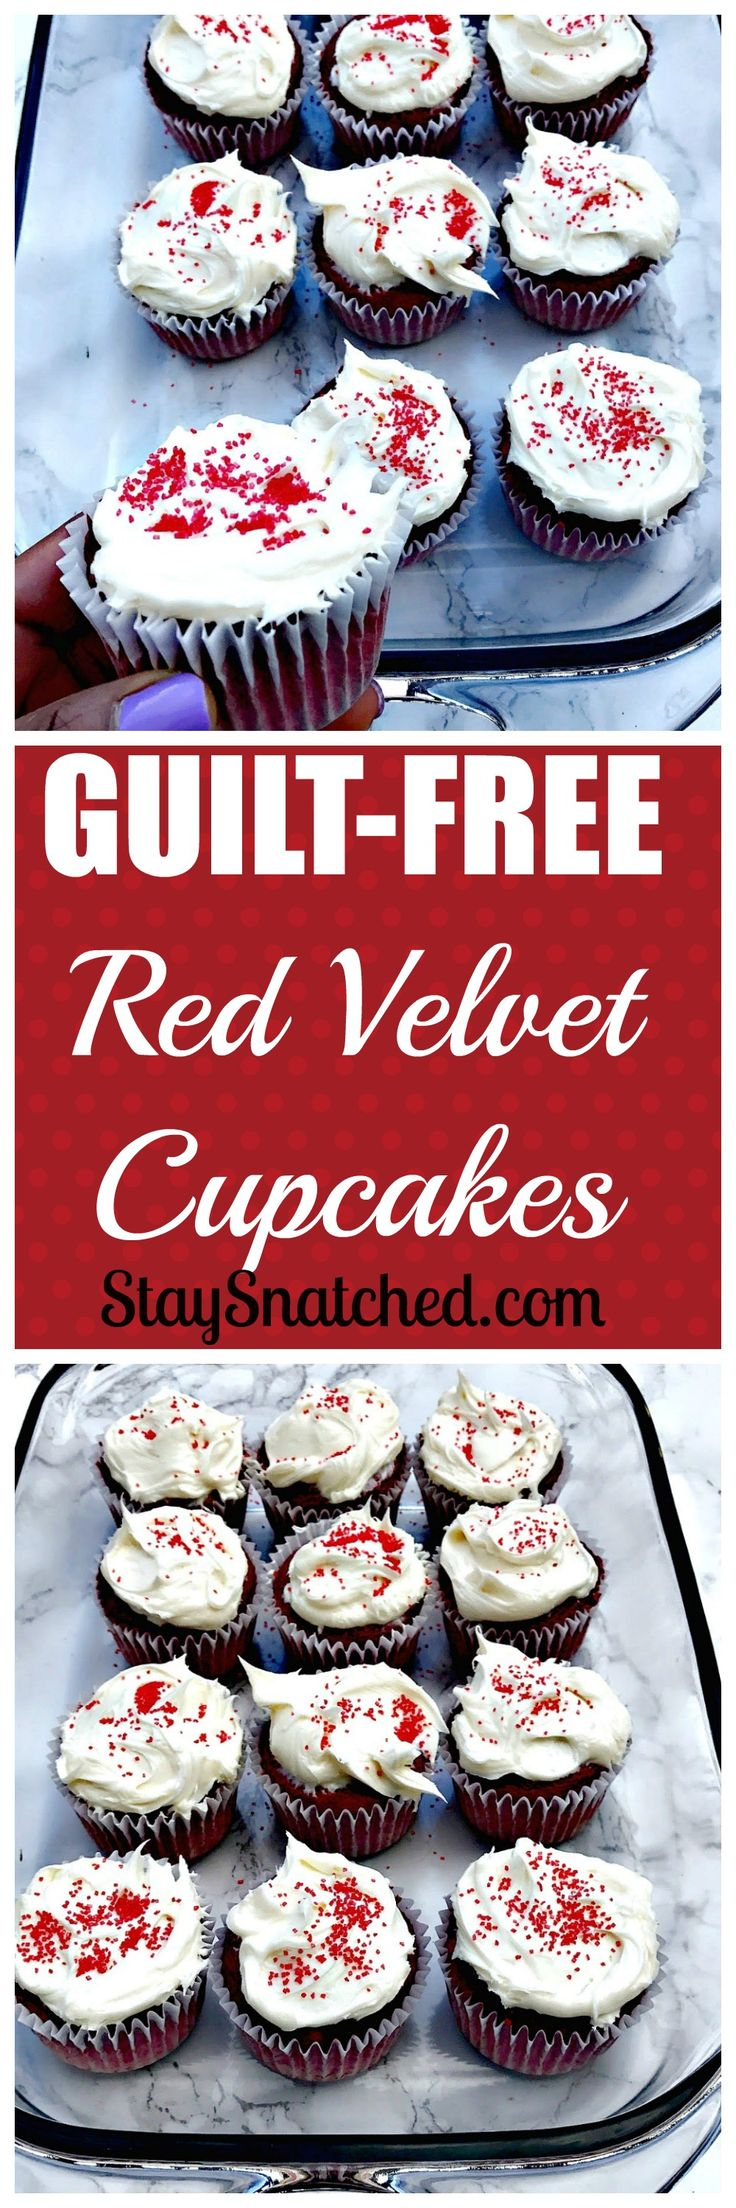 Guilt-Free Red Velvet Cupcakes topped with cream cheese frosting and sprinkles #RedVelvet #Cupcakes #Skinny #ValentinesDay